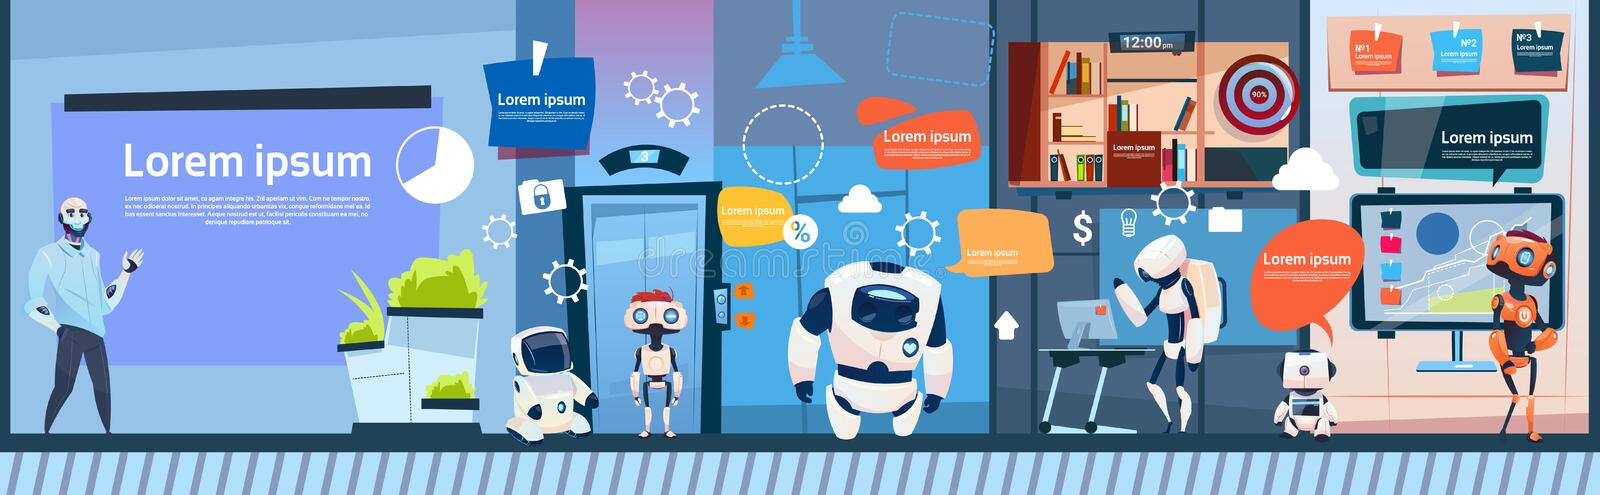 Modern Office Business Robots Group Working, Company Cyborg Team Banner With Copy Space vector illustration